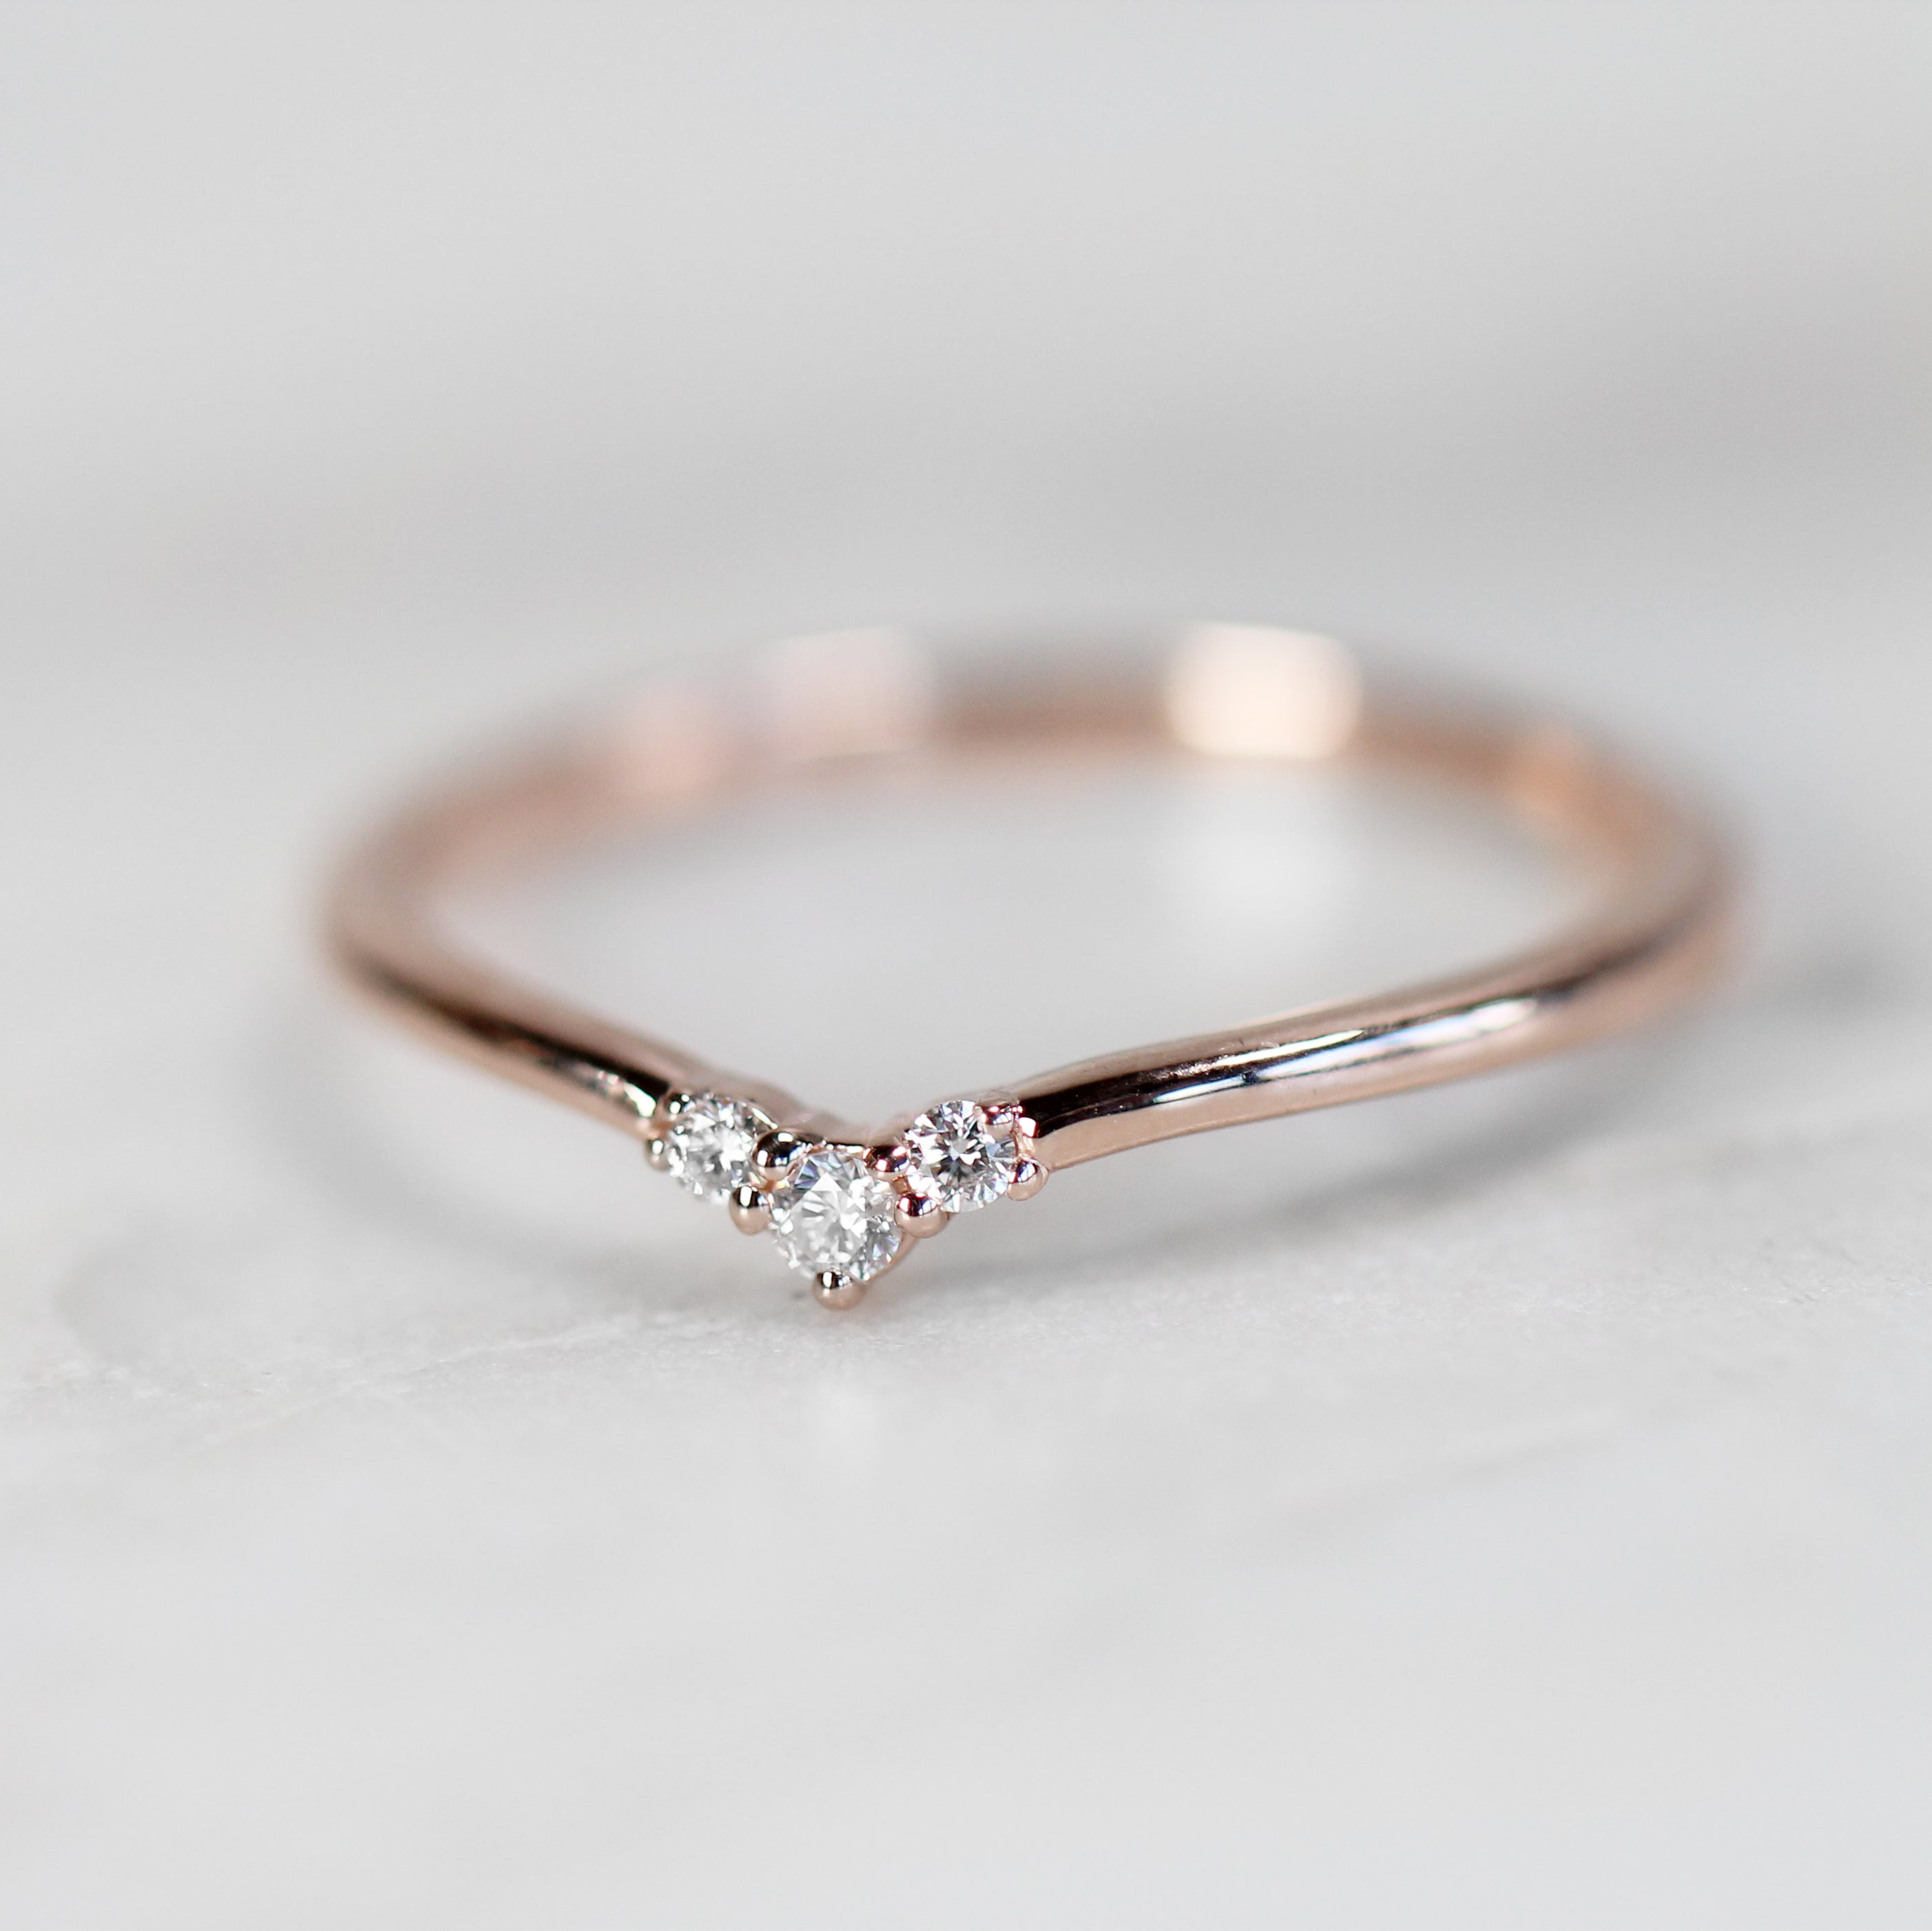 Emmie Contour Point Diamond Wedding Band - Salt & Pepper Celestial Diamond Engagement Rings and Wedding Bands  by Midwinter Co.